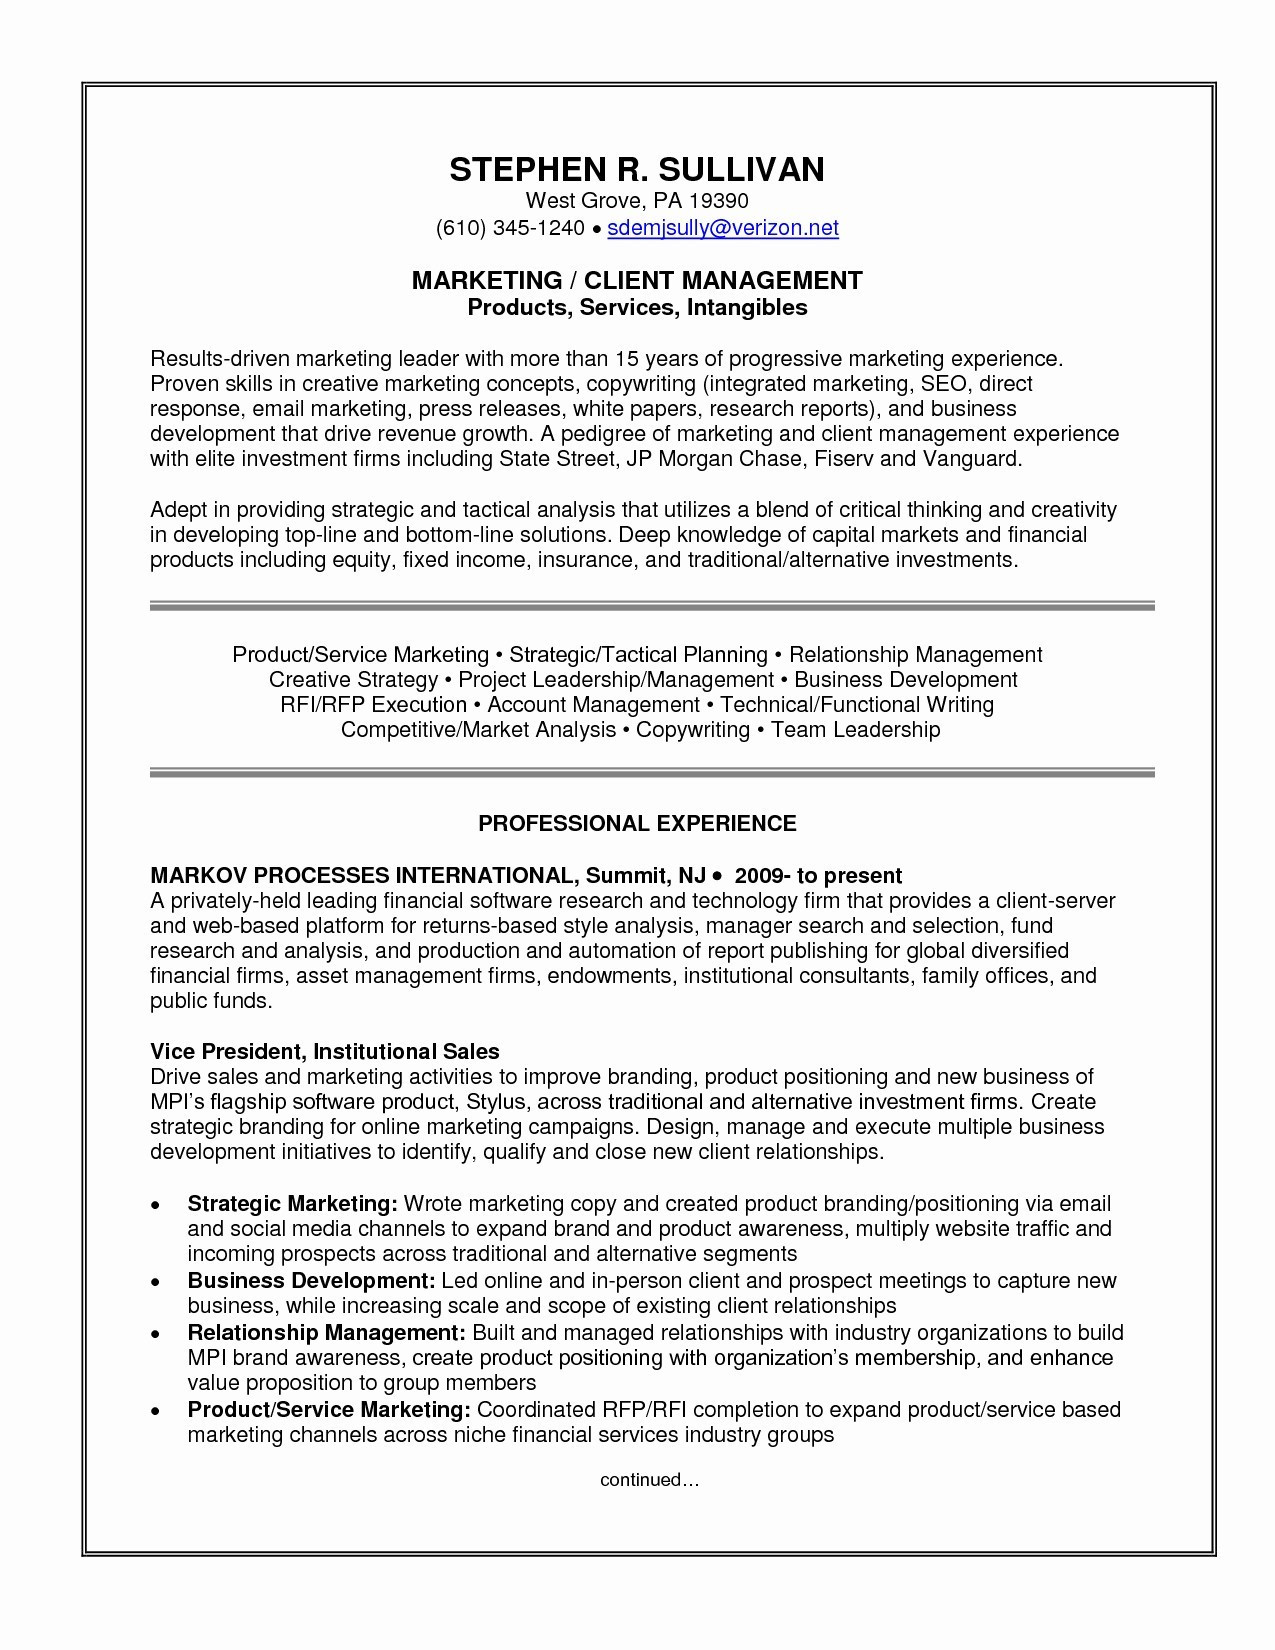 Digital Marketing Resume Sample - Experienced Professional Resume Template Best top Resume Template